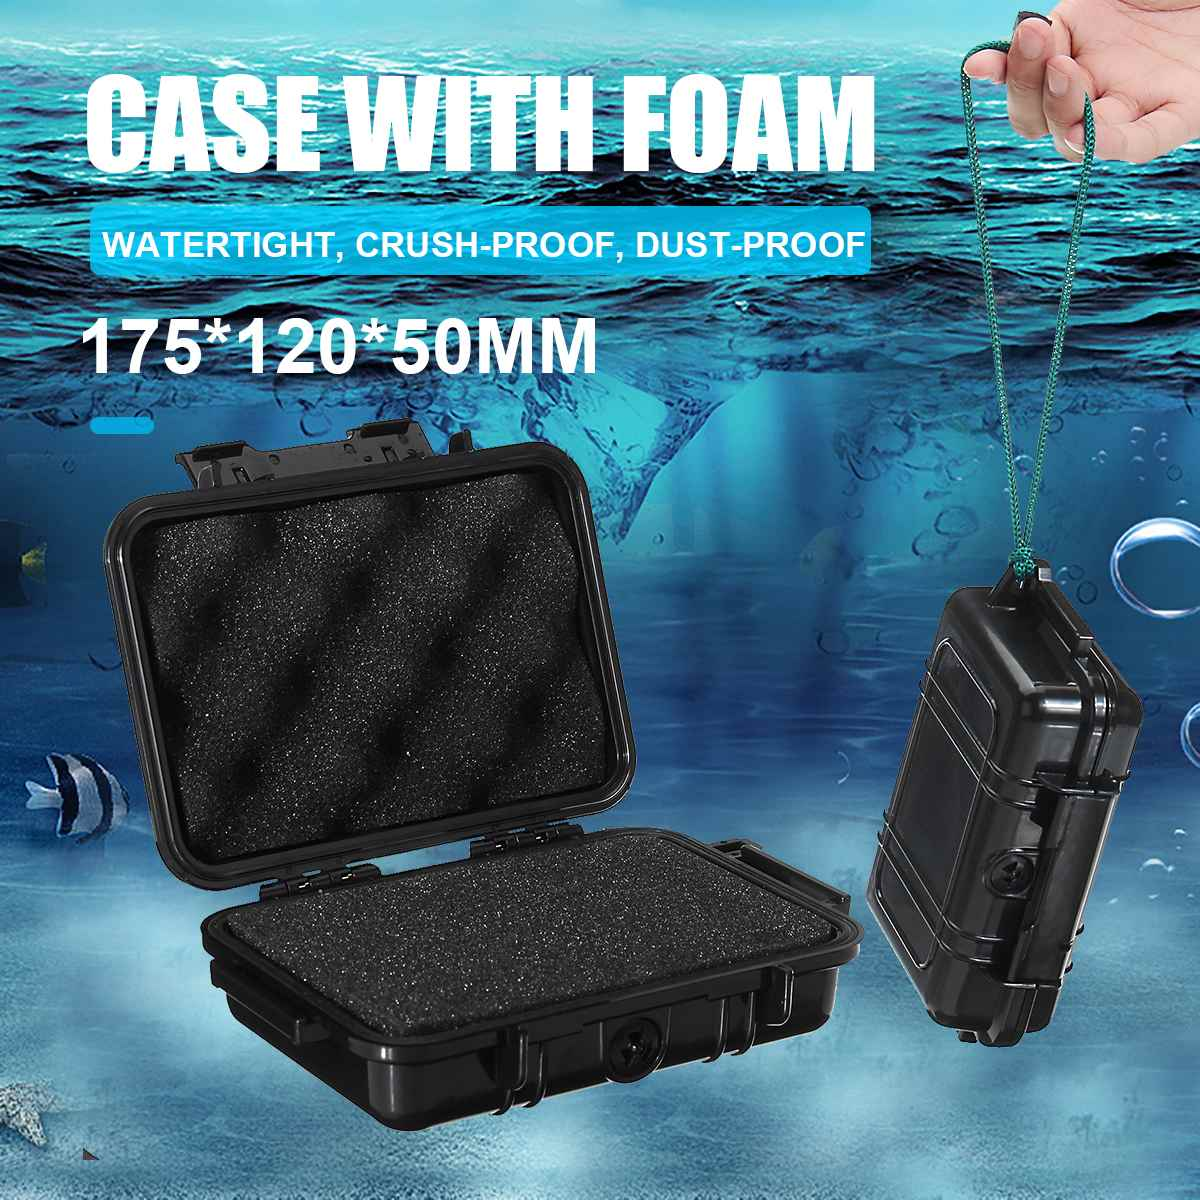 MG180 Protective Safety Instrument Tool Box Waterproof Shockproof Storage Toolbox Sealed Tool Case Impact Resistant Suitcase